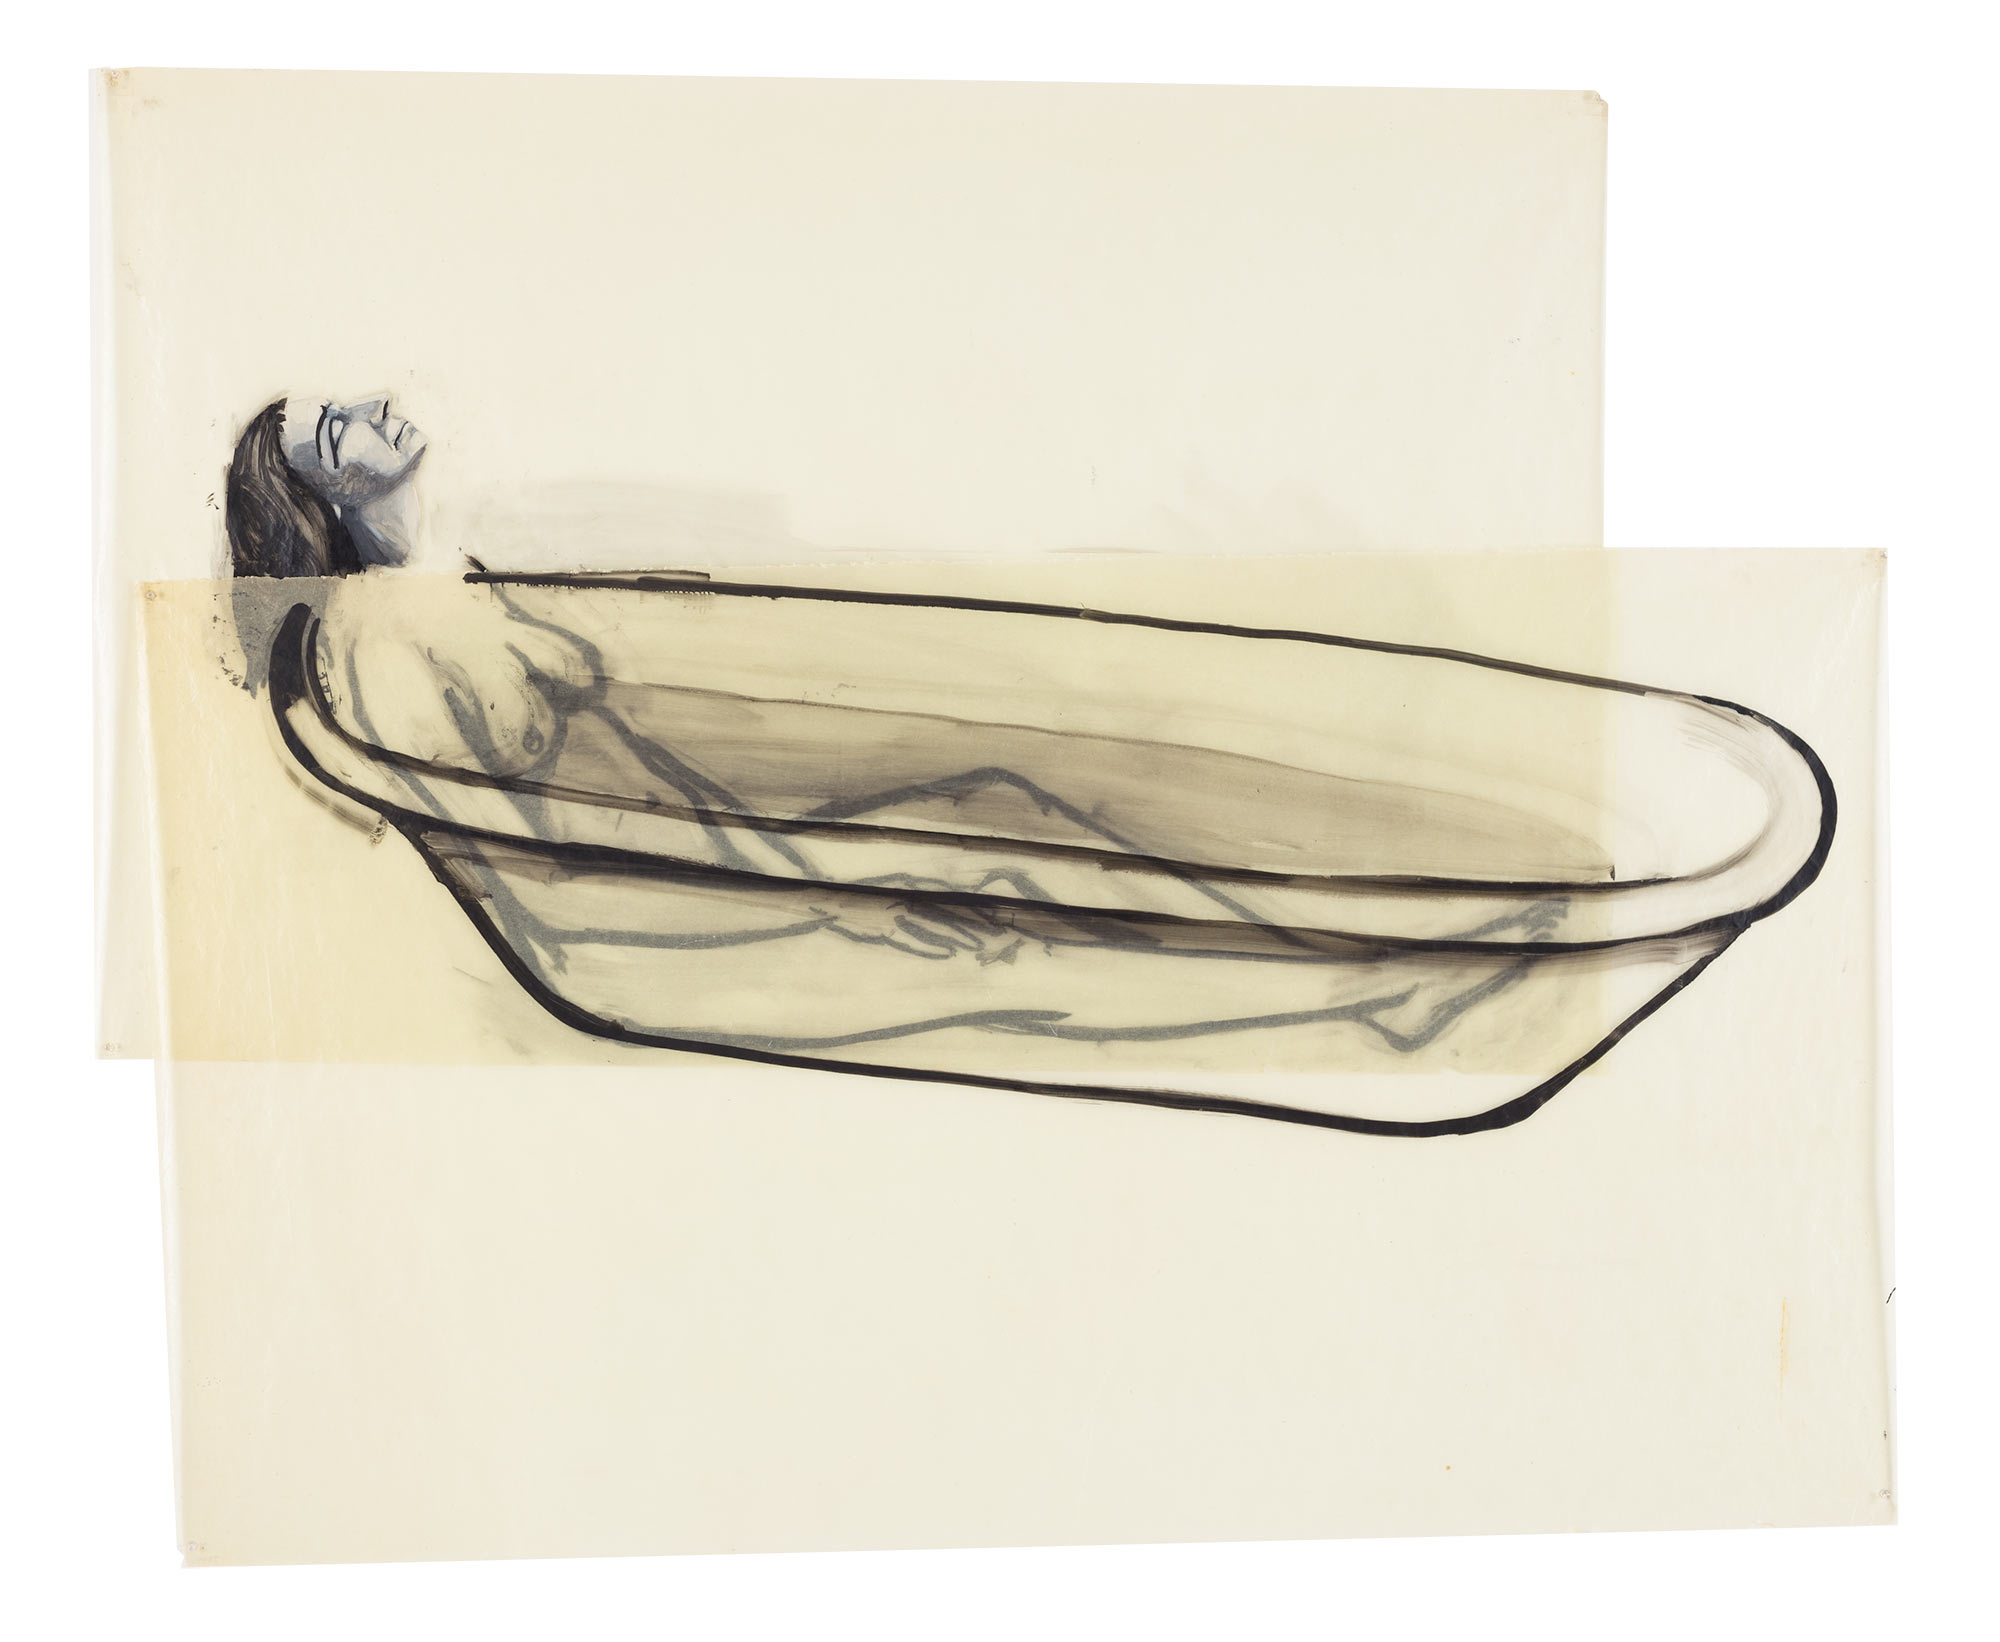 1st Woman in Water, 1977. Oil on Glassine. 63 x 76 1/2 in. (160 x 194 cm.)